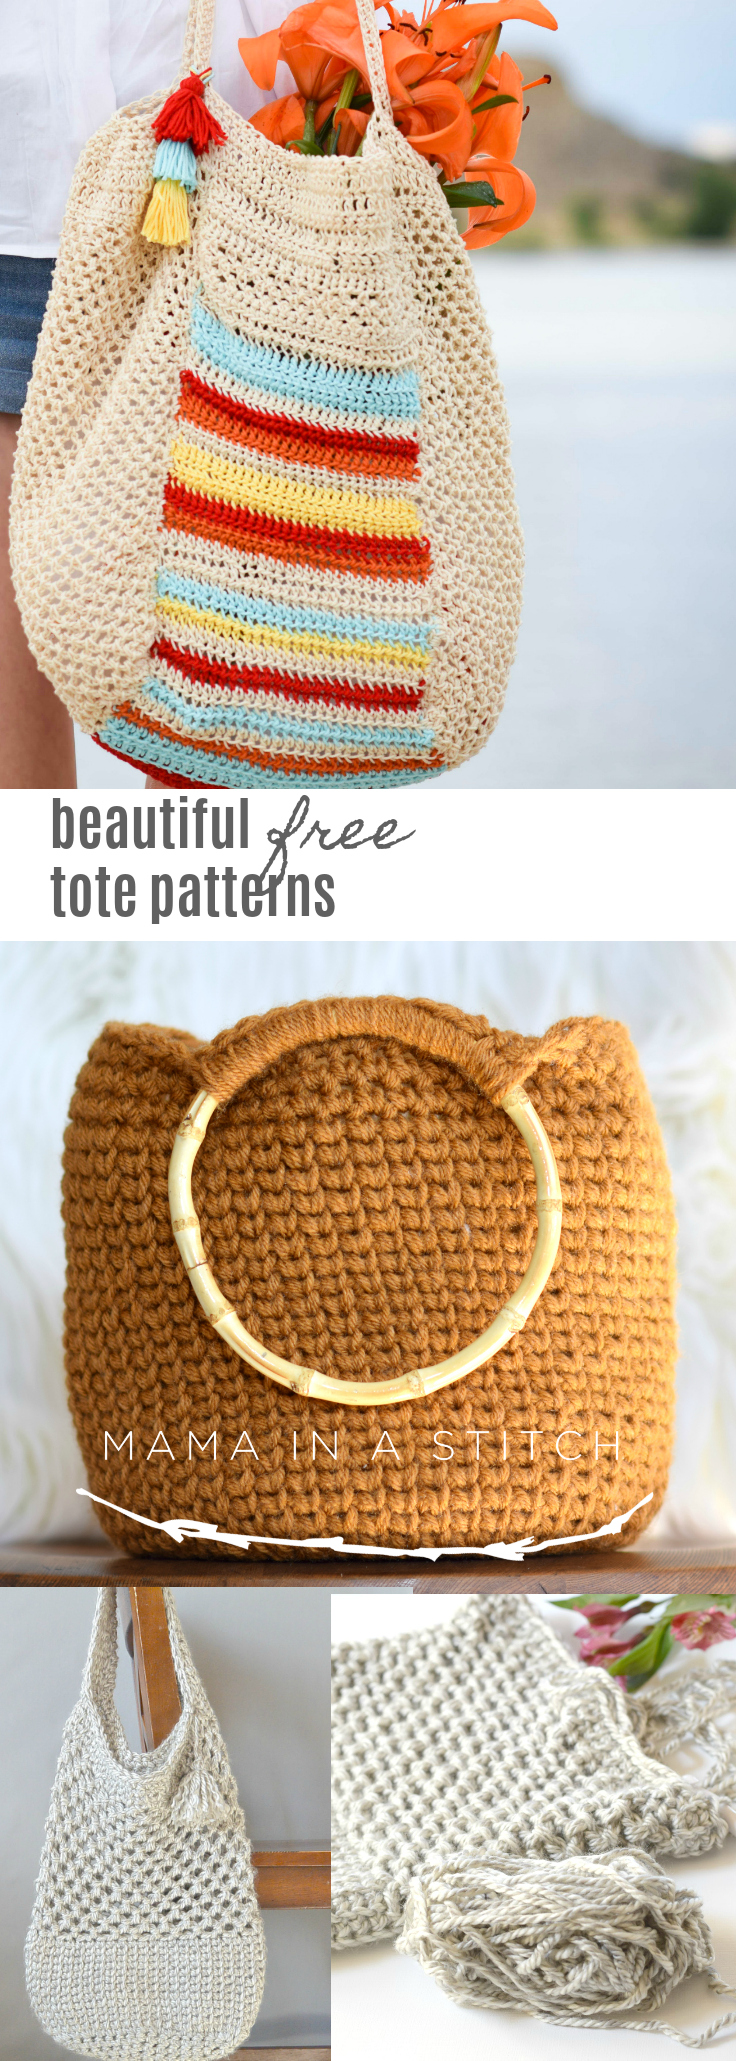 Easy Crochet & Knit Bag Patterns - Mama In A Stitch